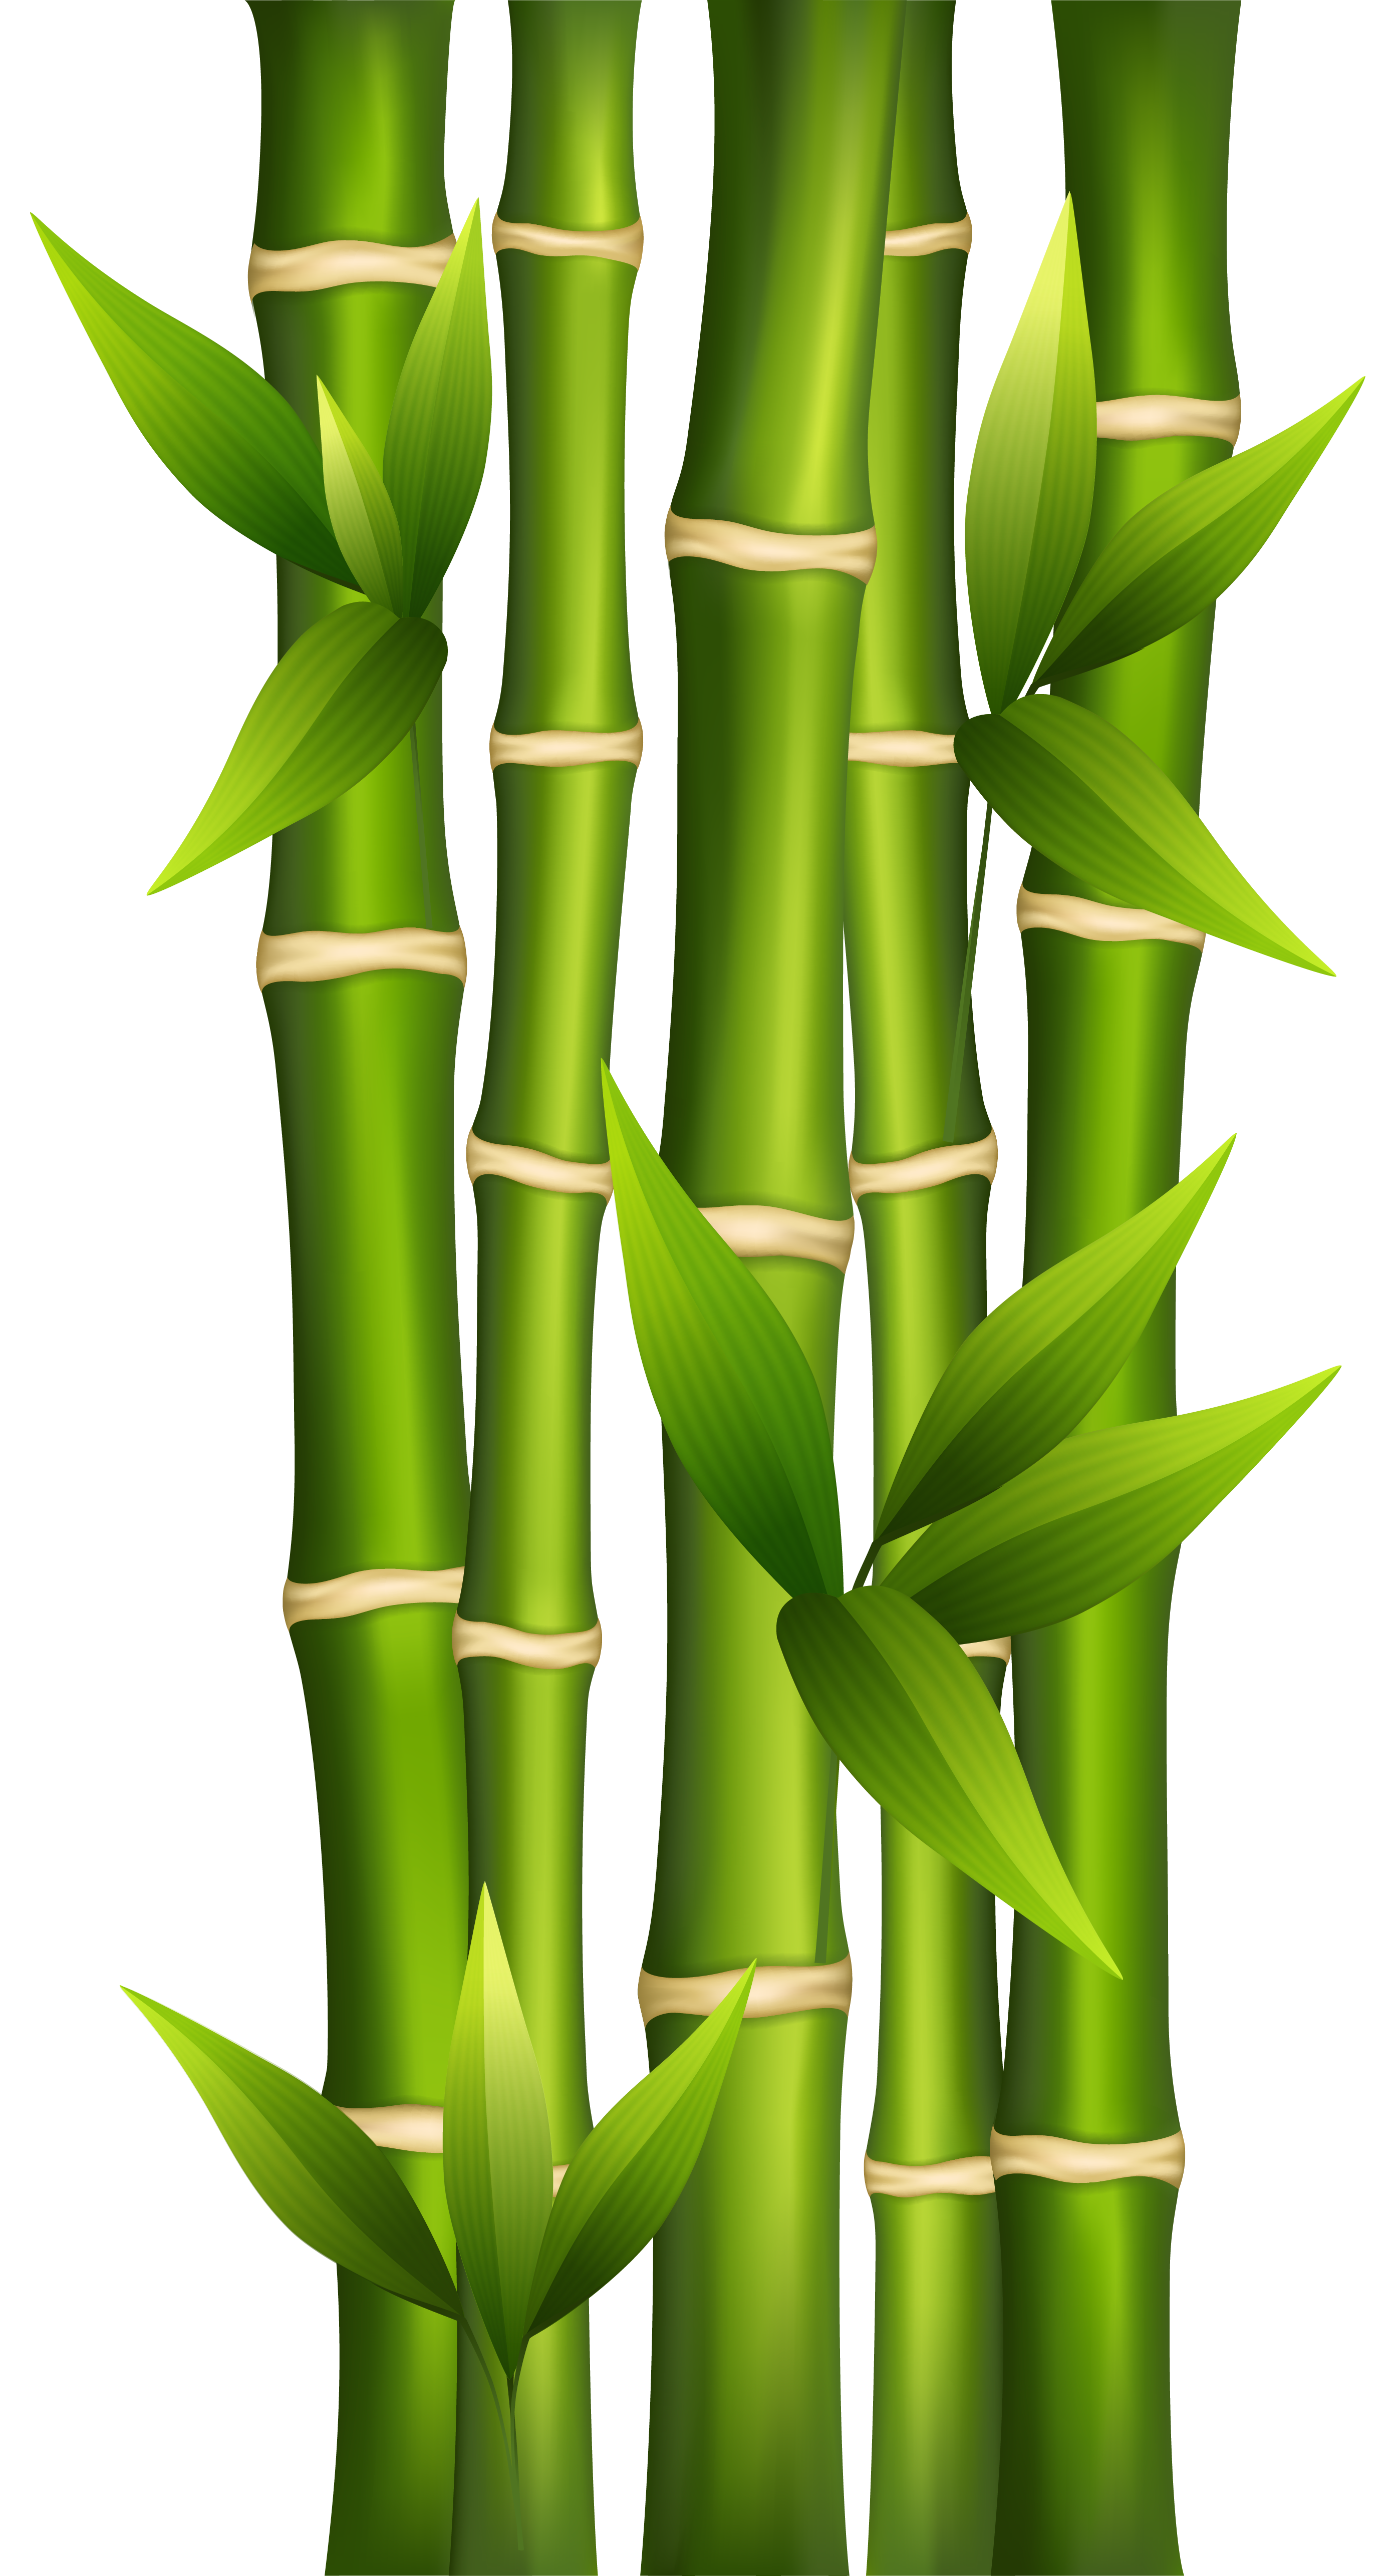 Bamboo forest house clipart clip art free library 28+ Collection of Bamboo Clipart | High quality, free cliparts ... clip art free library